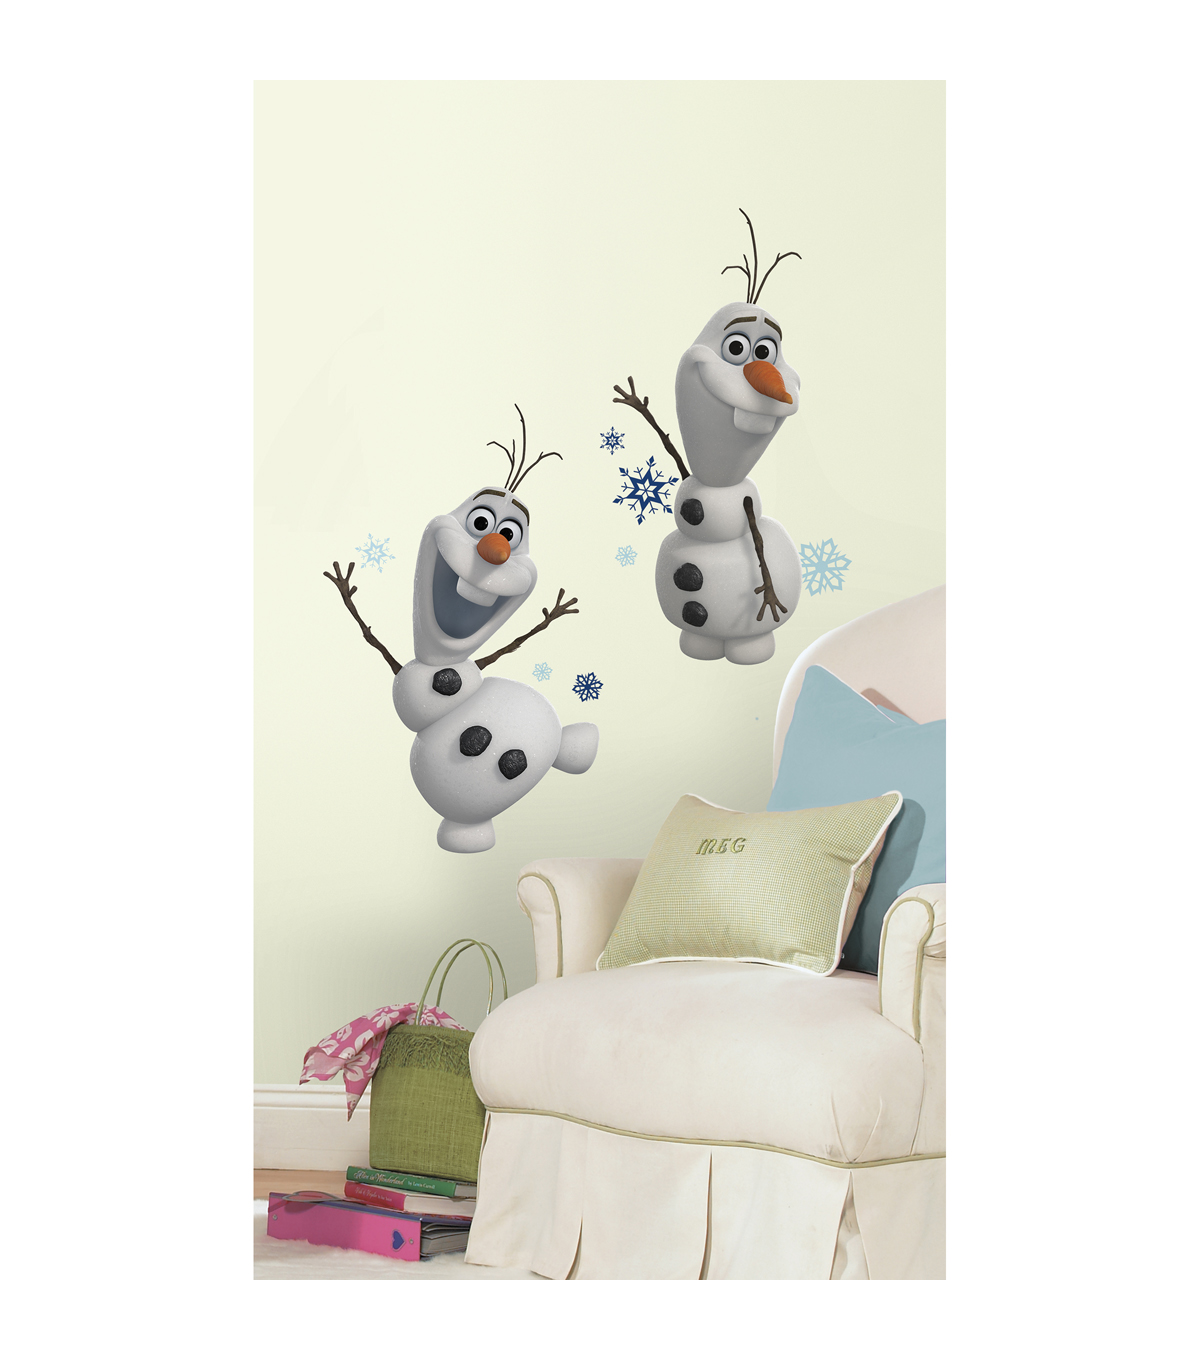 Frozen Olaf Peel & Stick Wall Decals 25 Pack